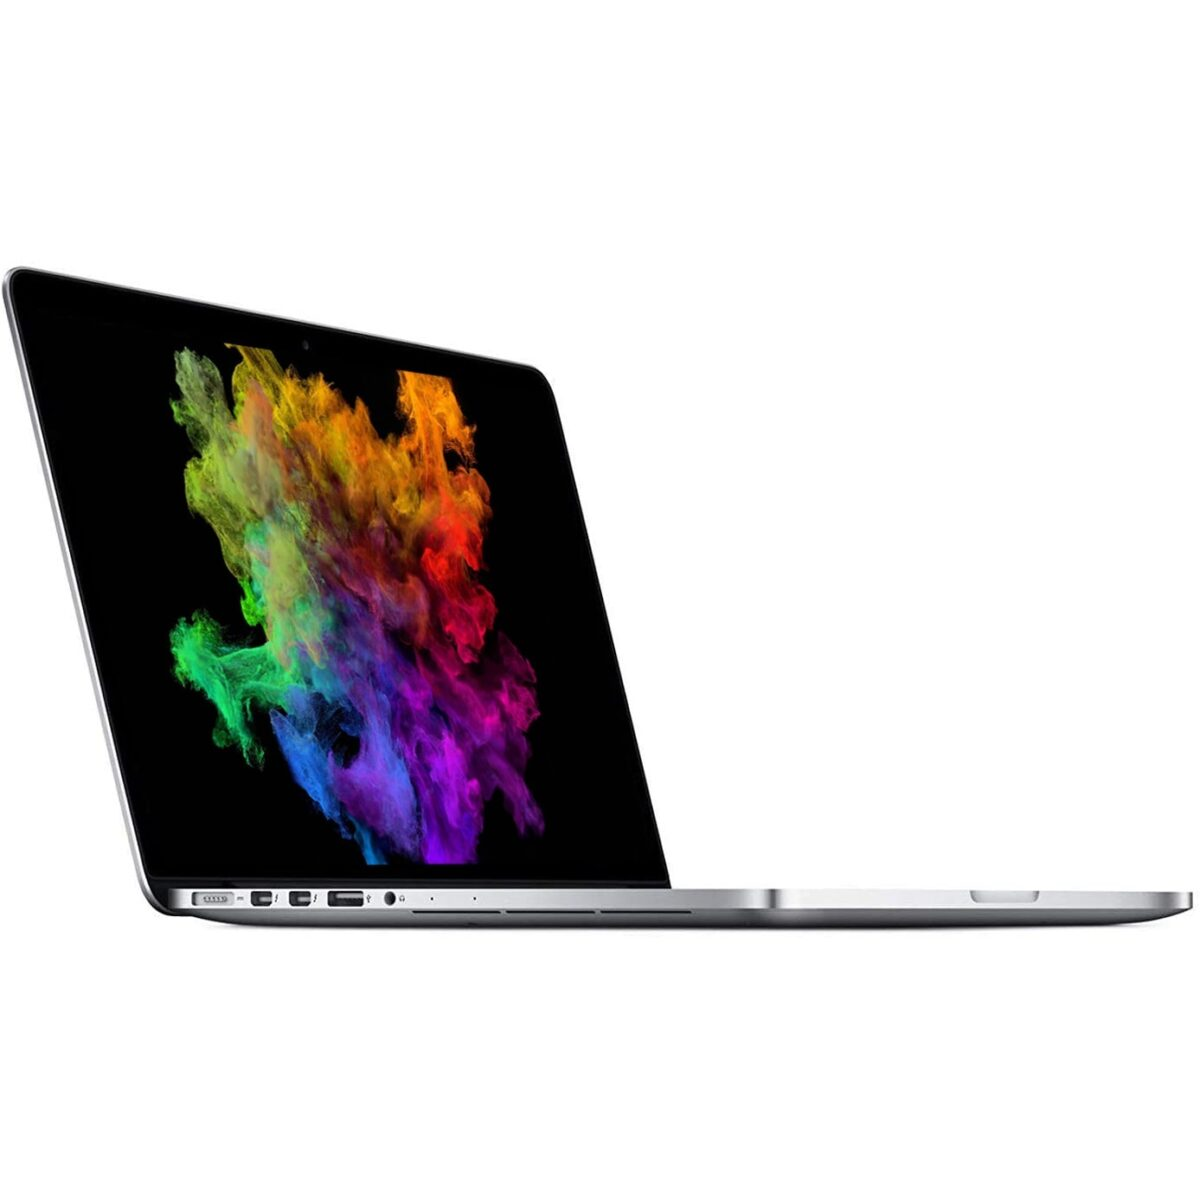 "Retina Apple Macbook Pro 13.3"" 128GB SSD 16GB RAM A1502 Powerful Core i5 Mac Laptop OS Catalina"